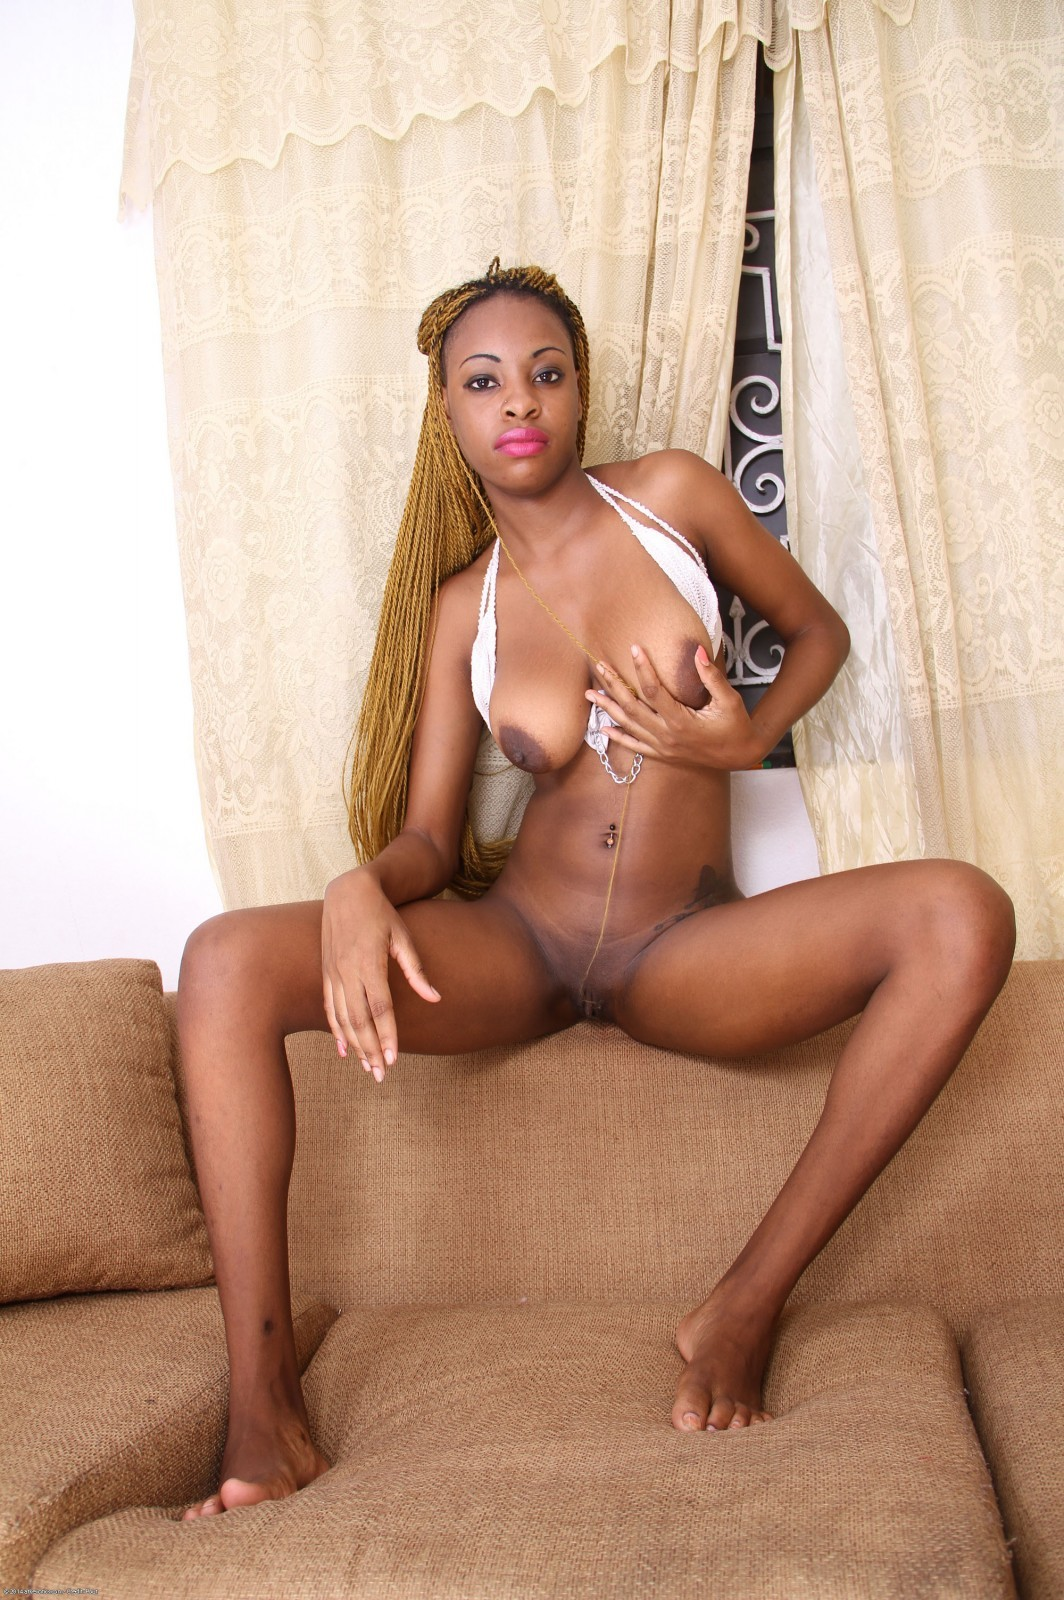 Ebony aliyah xxx mobile porn pics and sex images